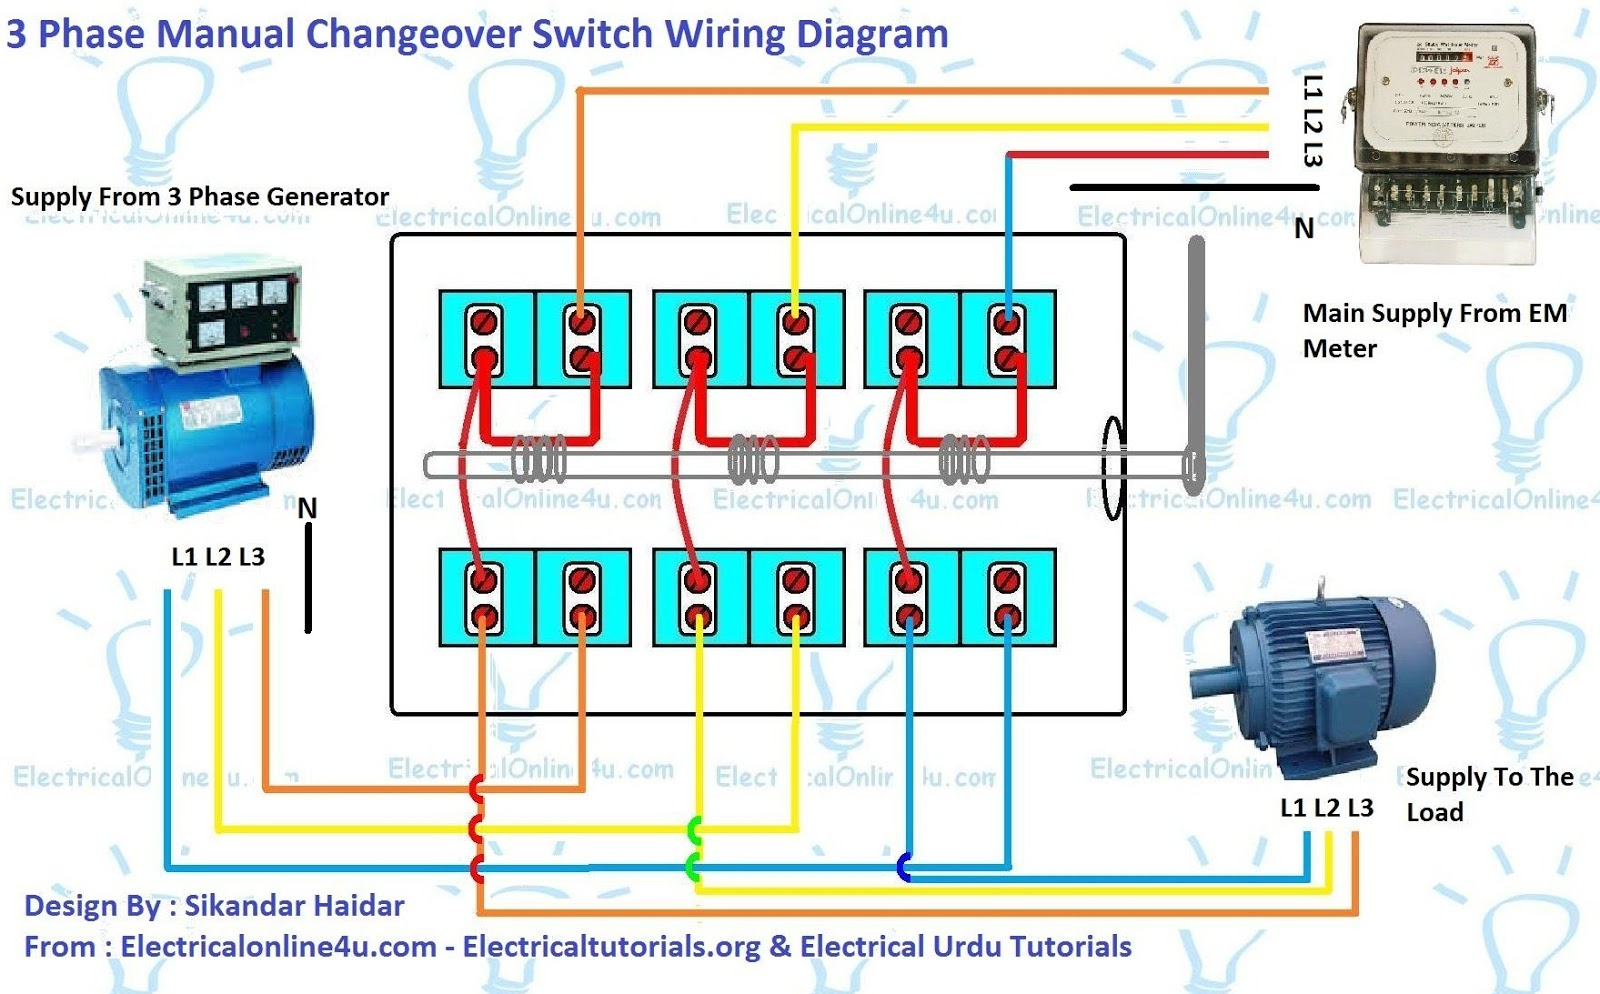 generac rtf 3 phase transfer switch wiring diagram 3 phase changeover switch wiring diagram